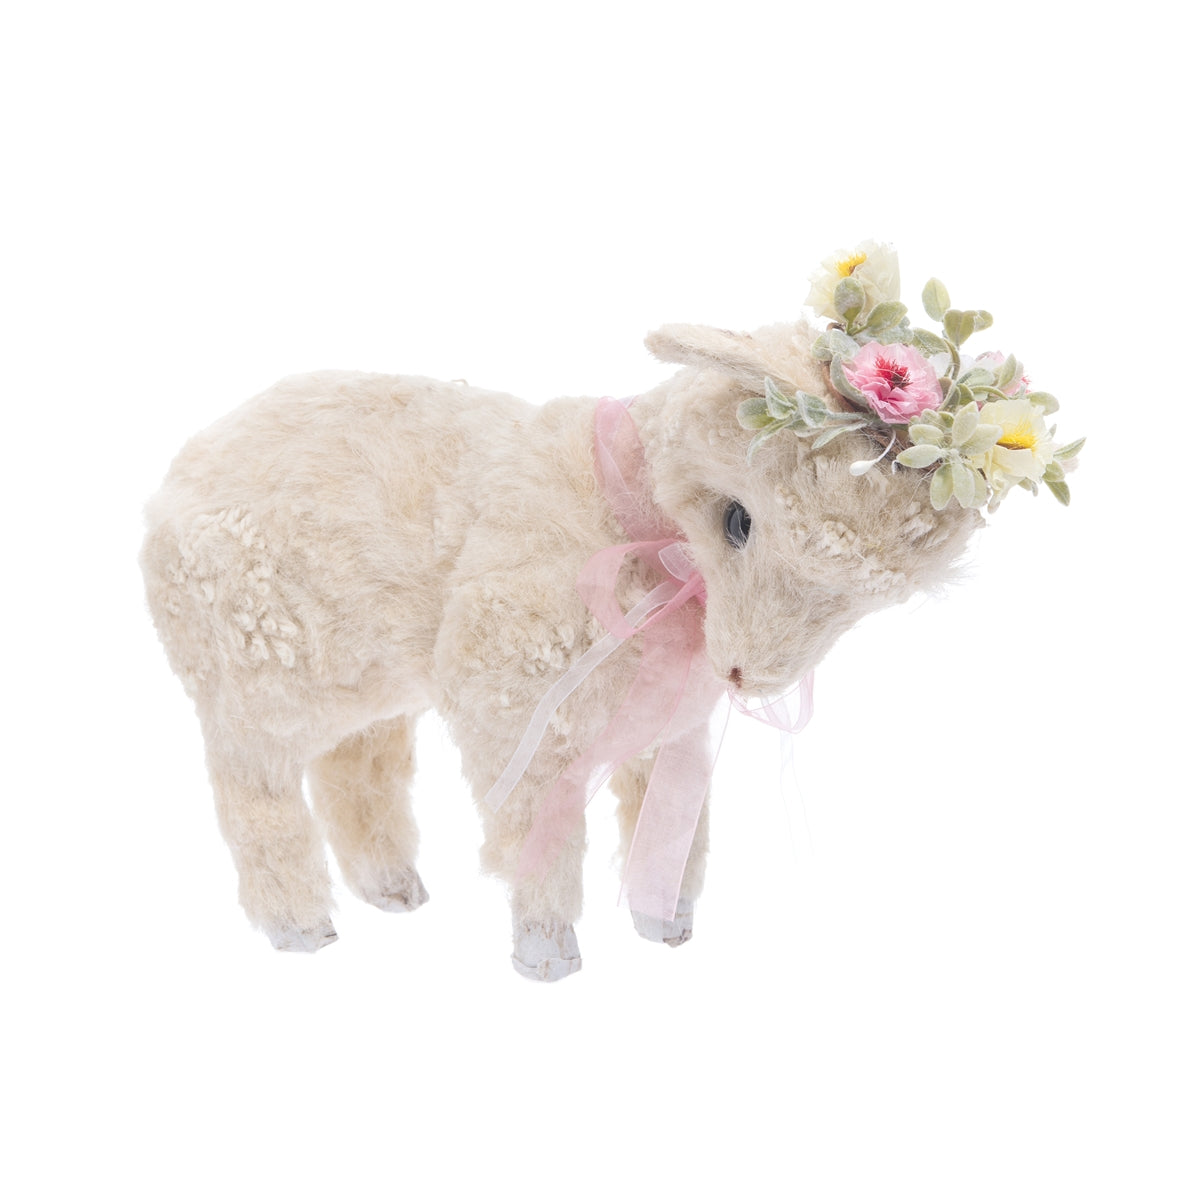 Spring Lamb with Flowers